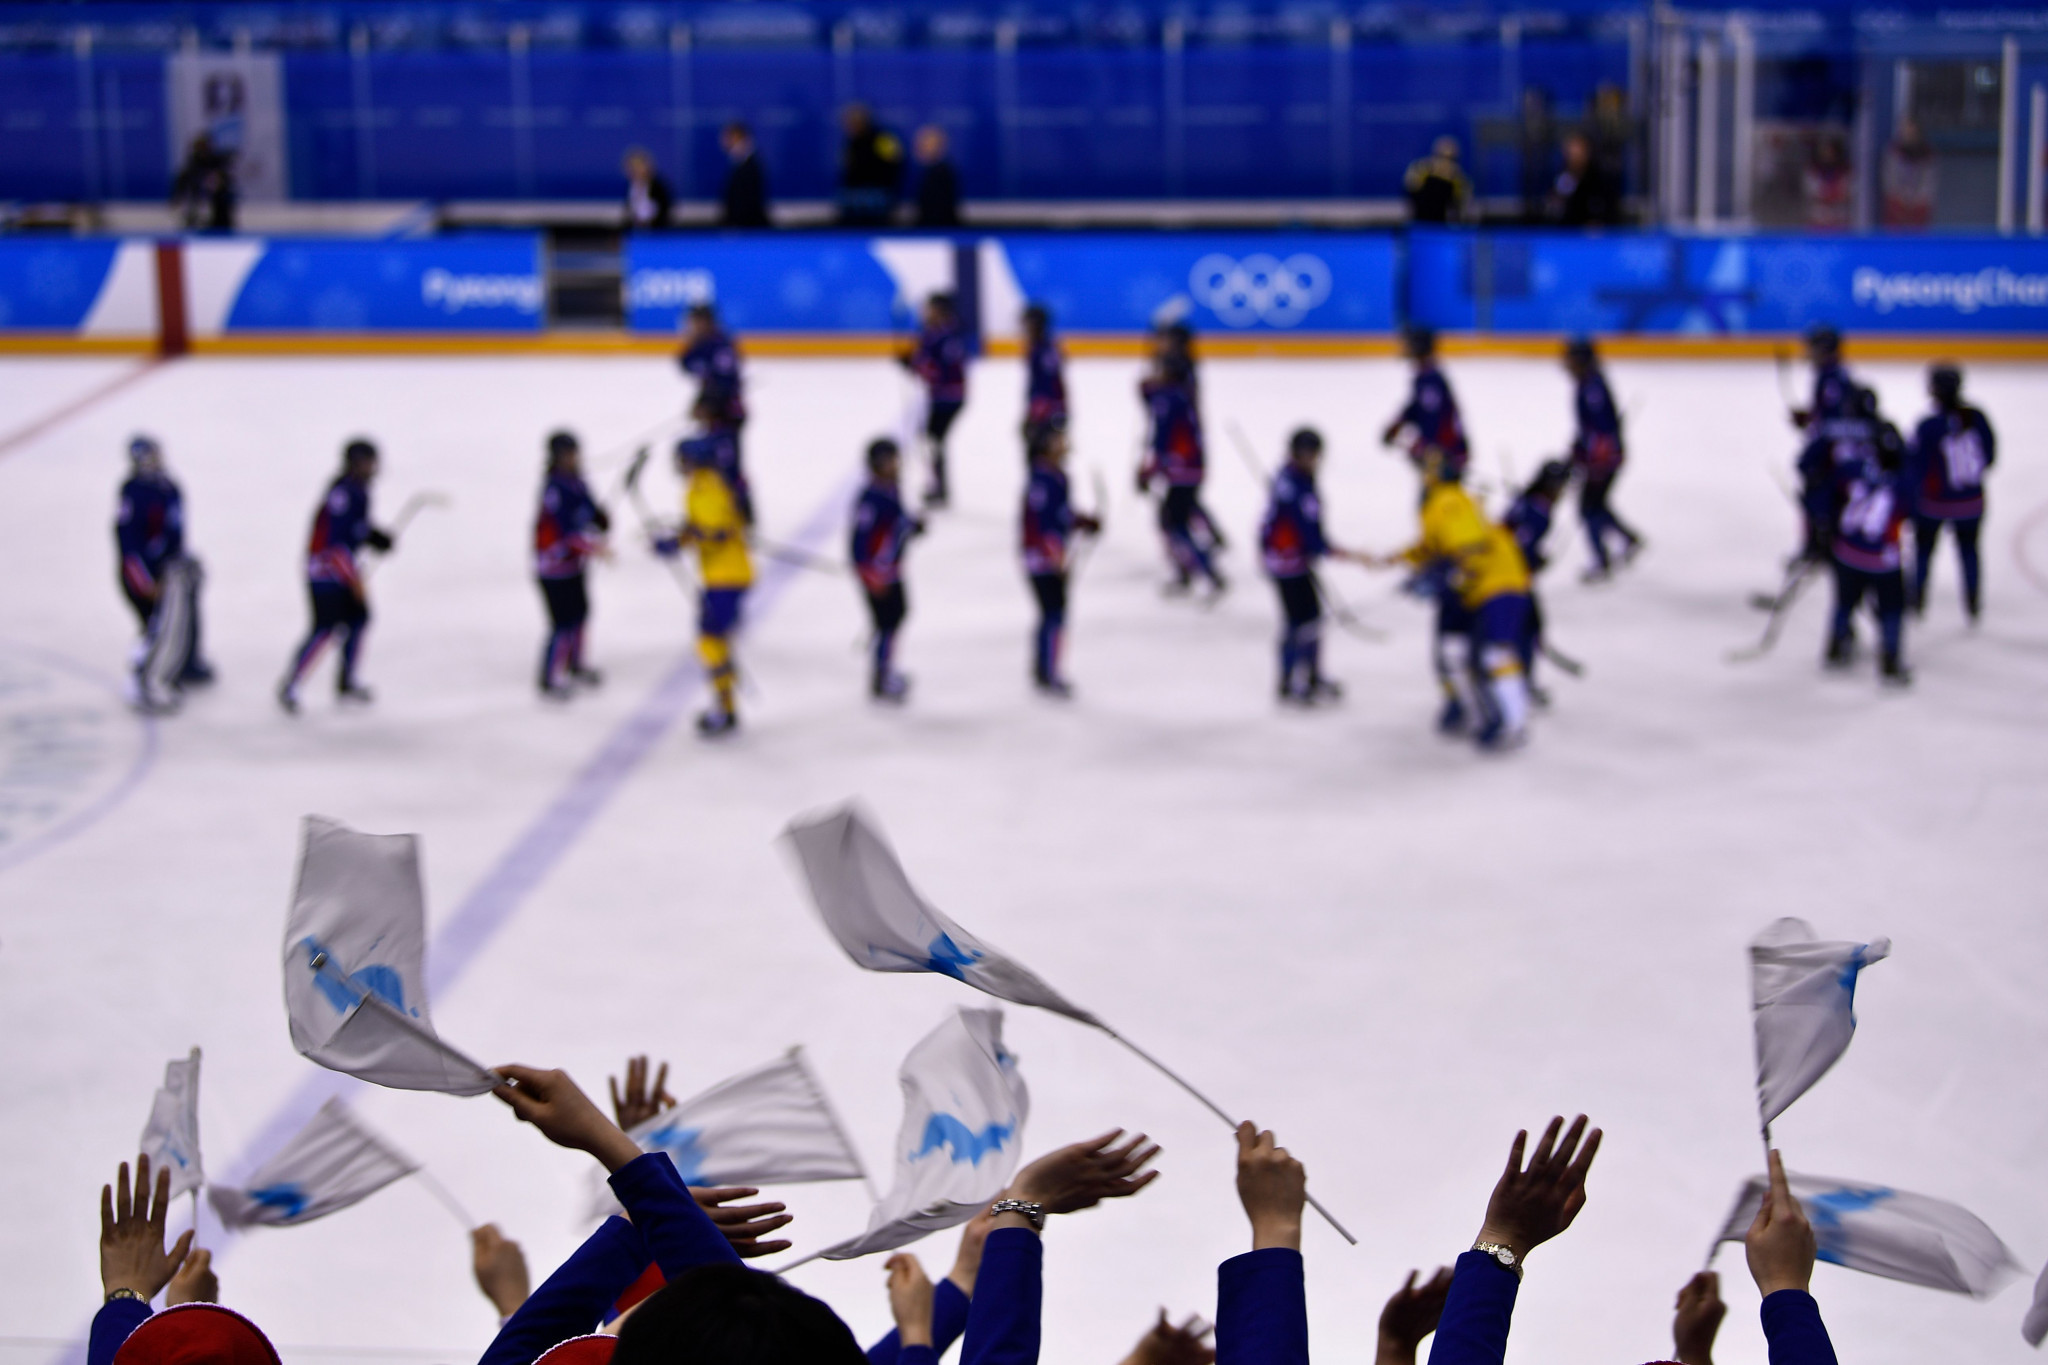 North and South Korea fielded a unified ice hockey team at the Pyeongchang 2018 Winter Olympic Games ©Getty Images